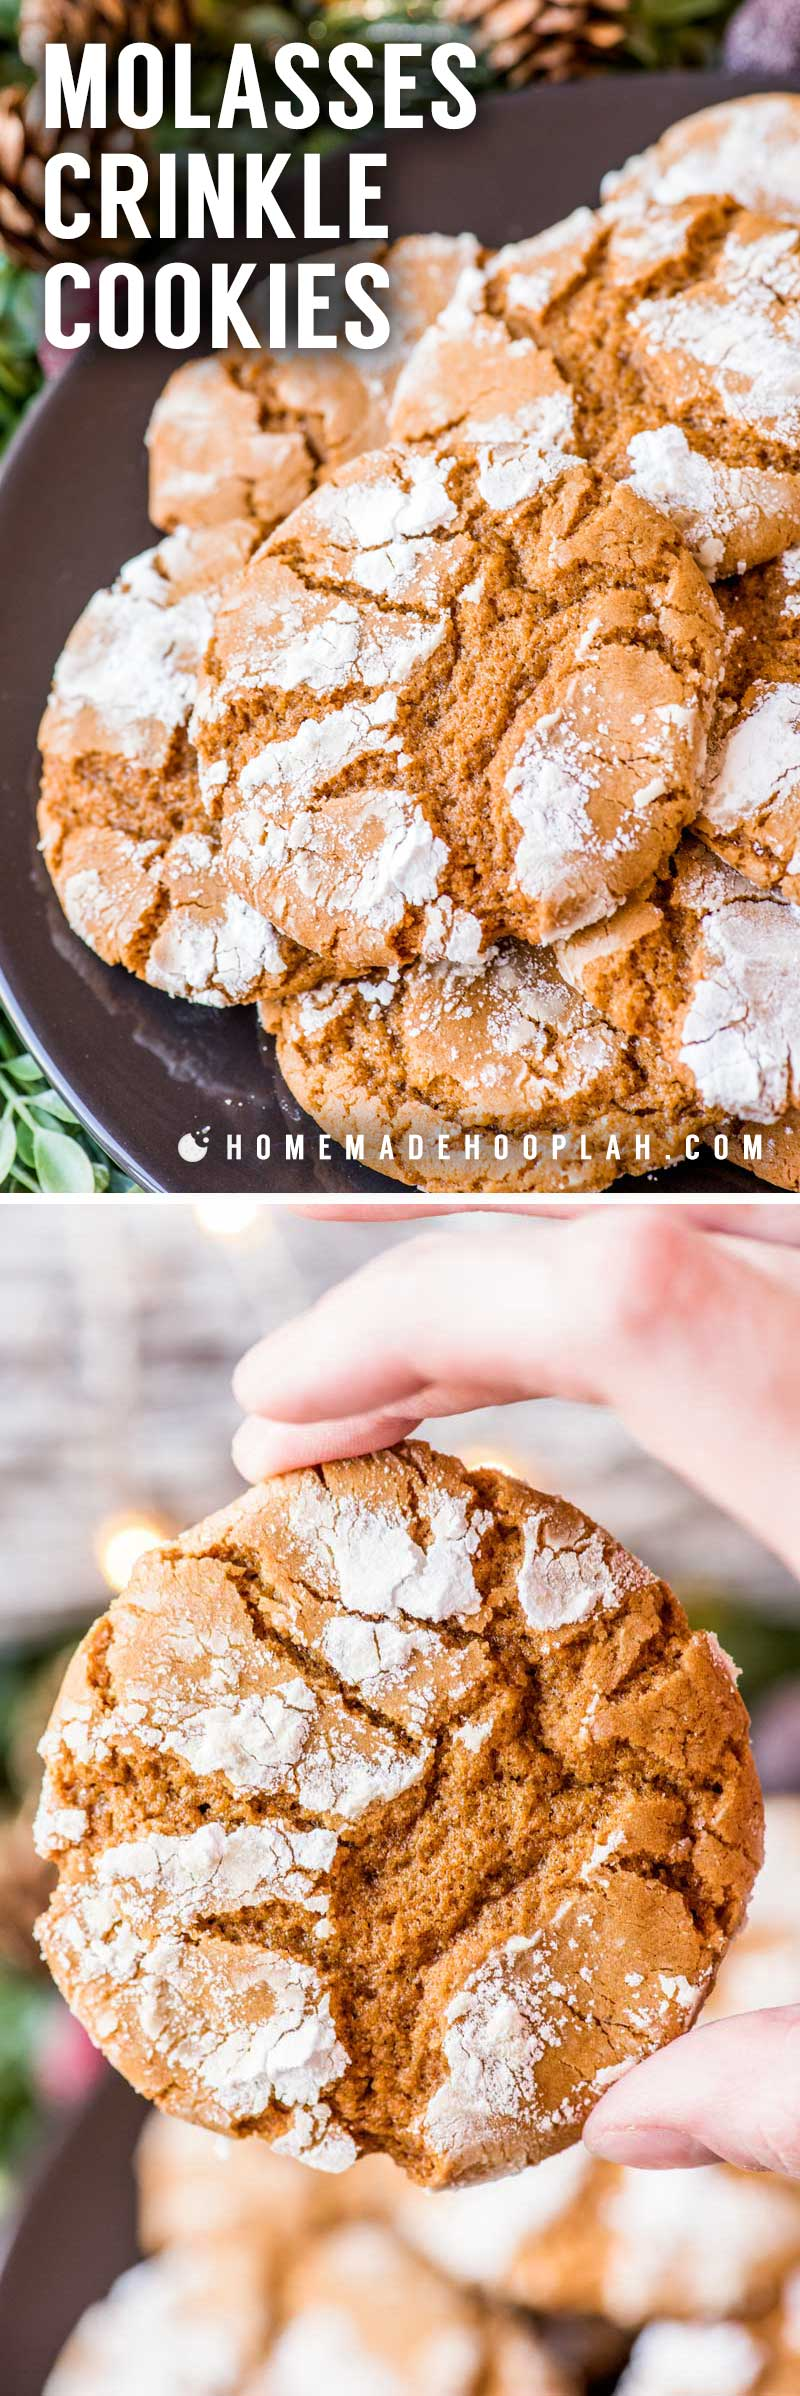 Molasses Crinkle Cookies! These classic spiced crinkle cookies have a dash of white pepper which makes for a perfect balance to the trademark powdered sugar coating. | HomemadeHooplah.com